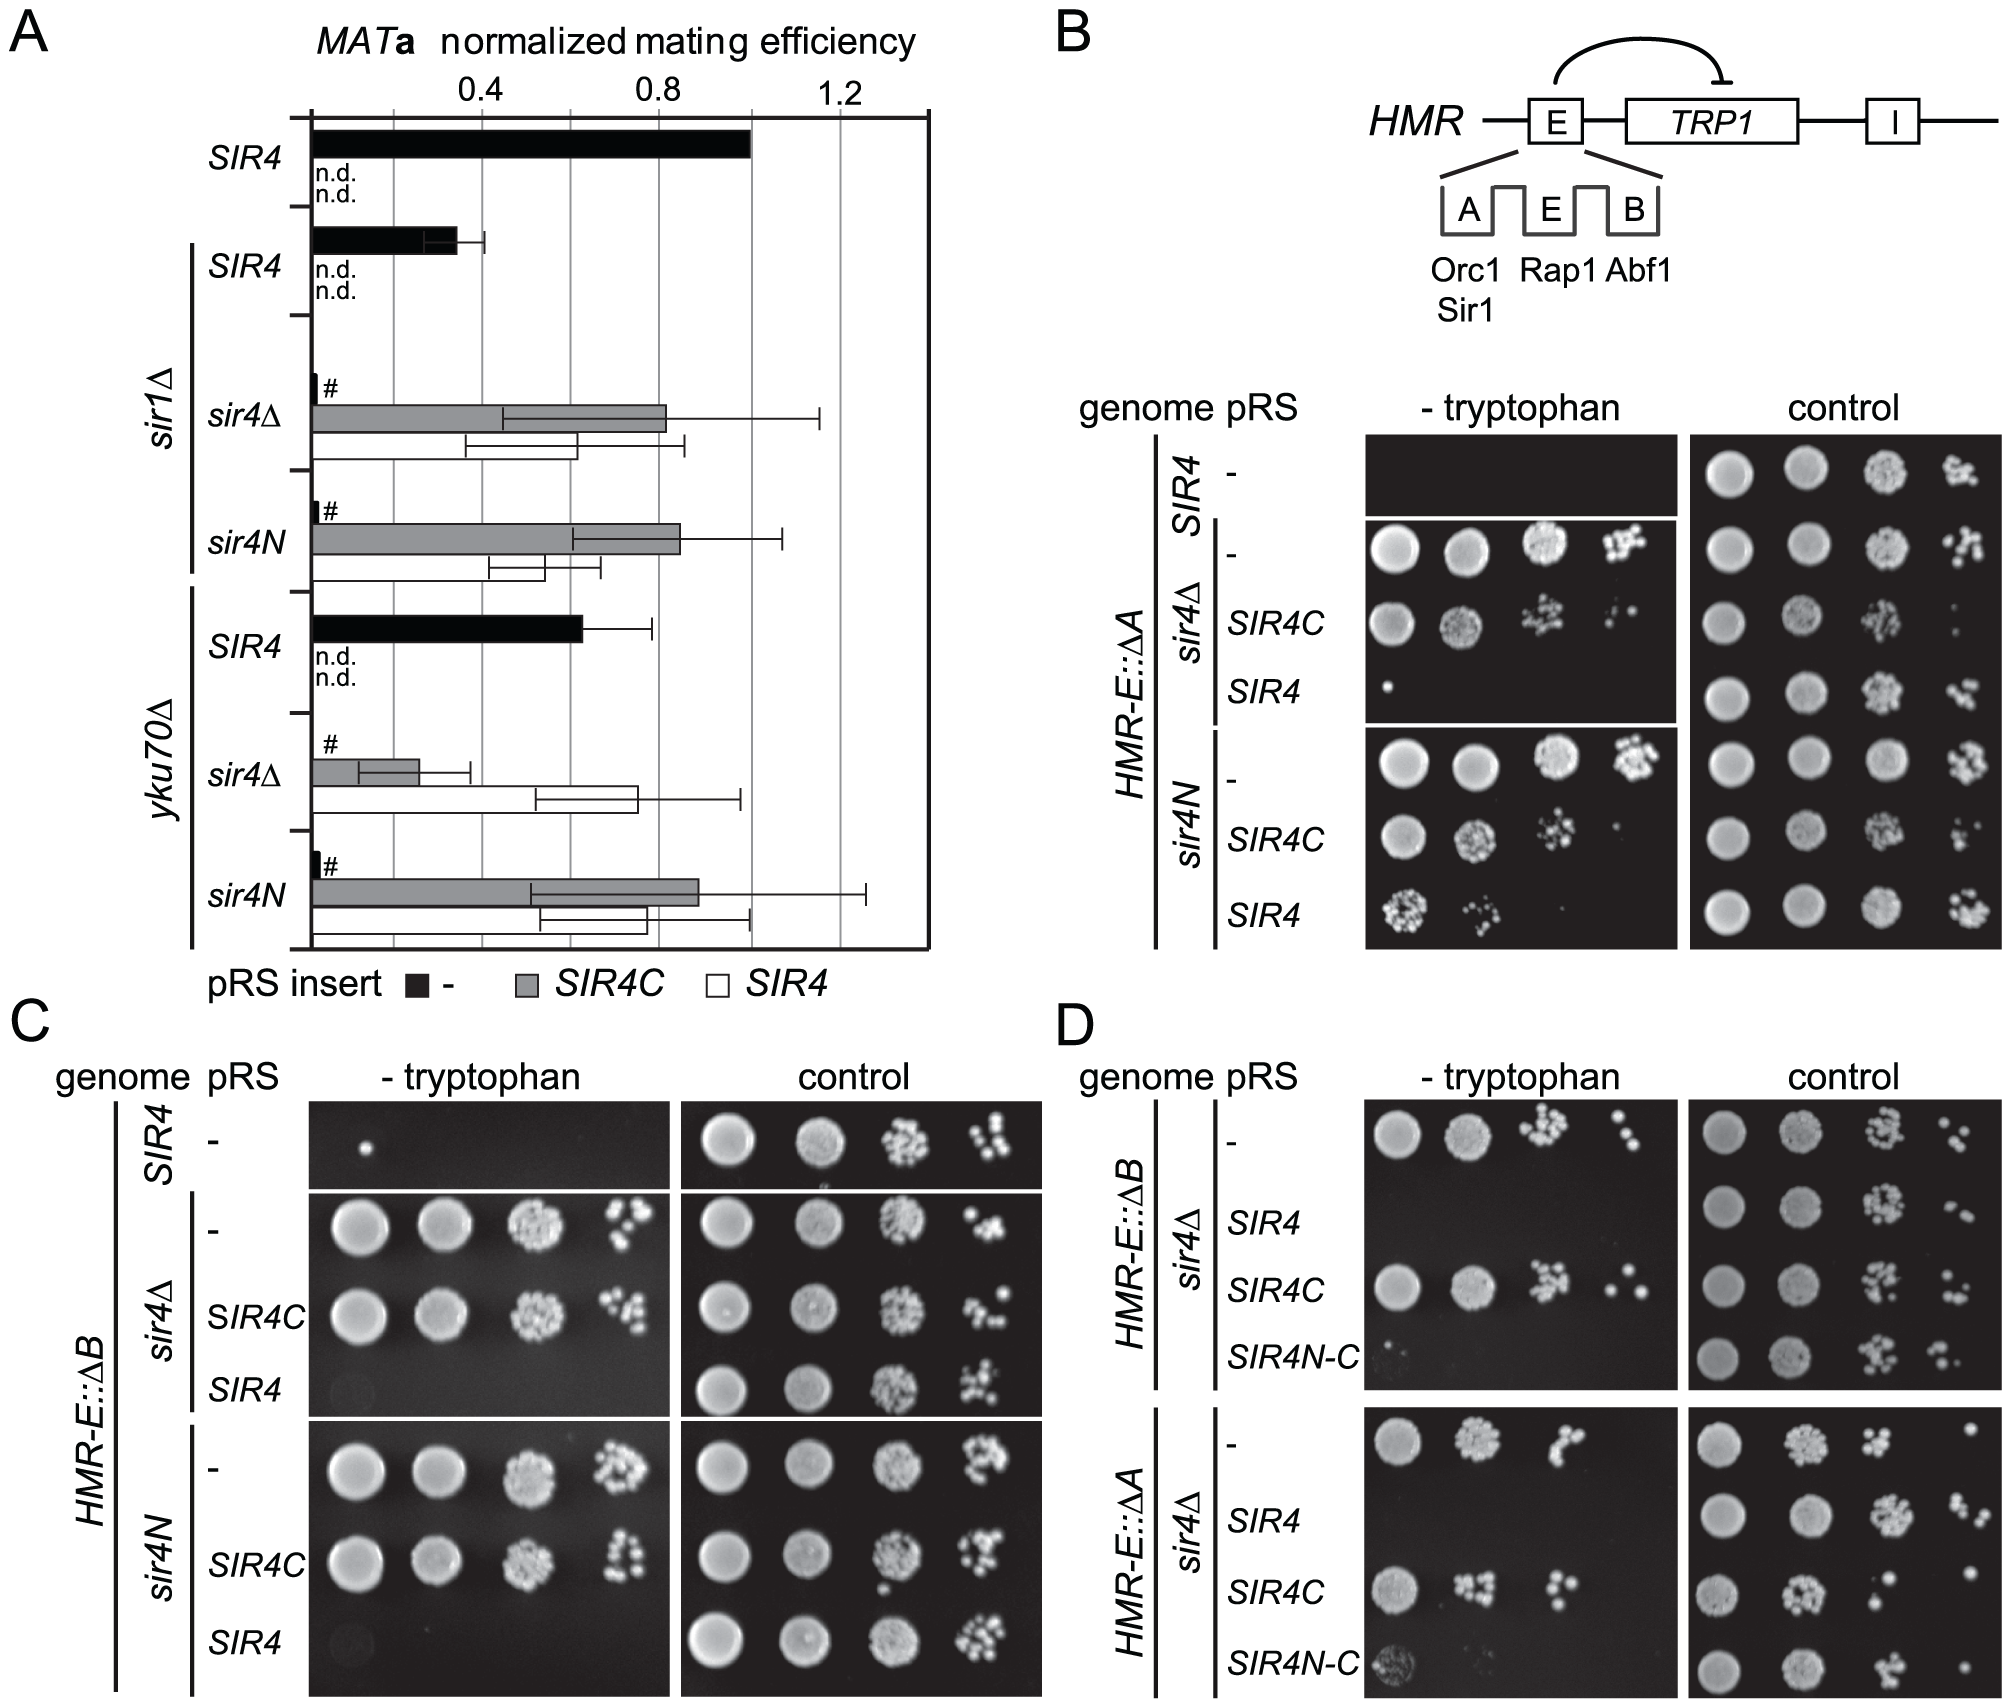 Sir4C is not sufficient for silencing at compromised <i>HM</i> loci.